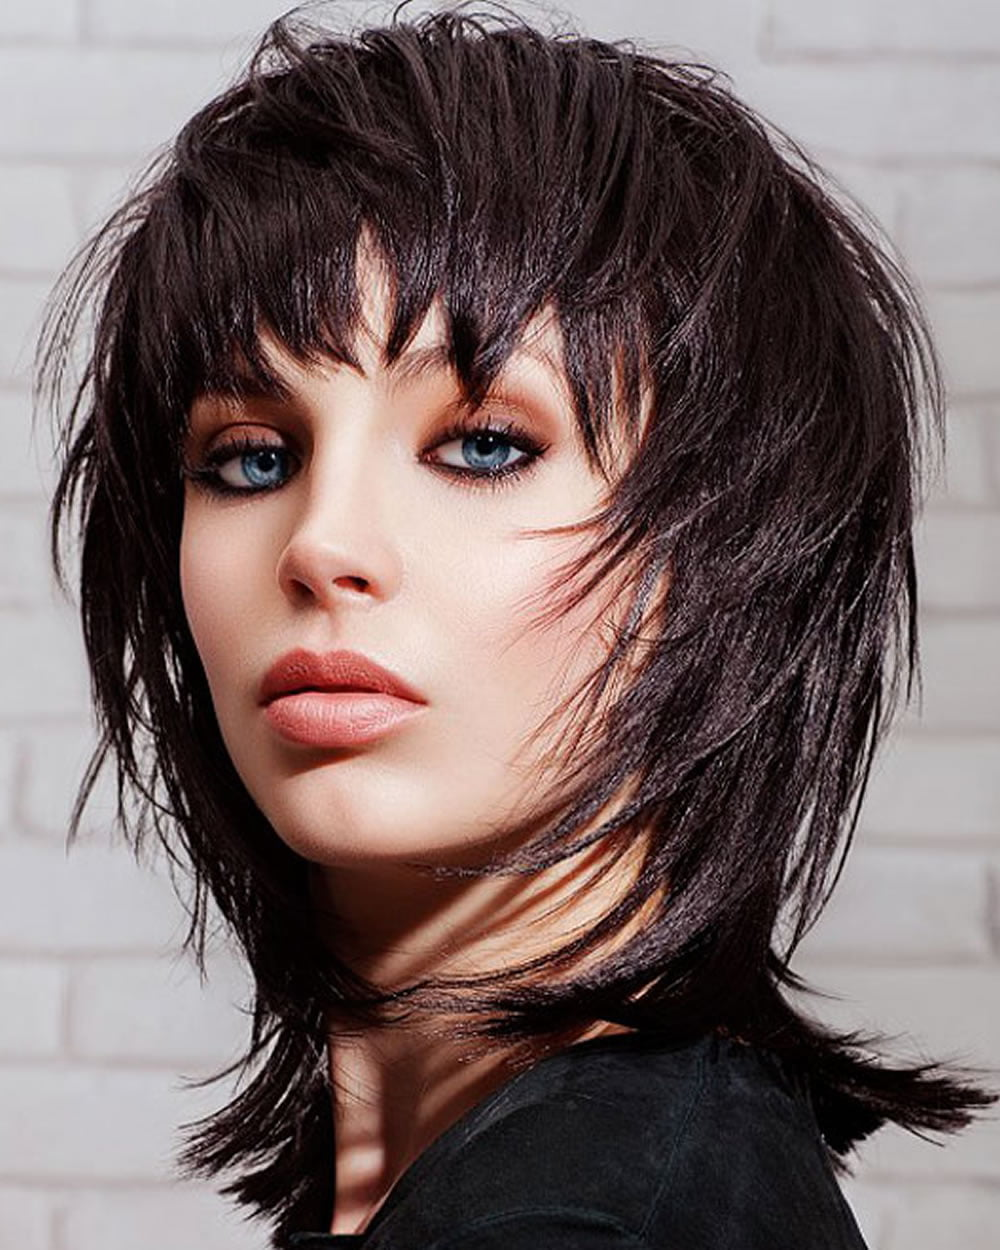 44 Easy Short Hairstyles for Fine Hair 20182019  New Hair Colors  Page 3  HAIRSTYLES